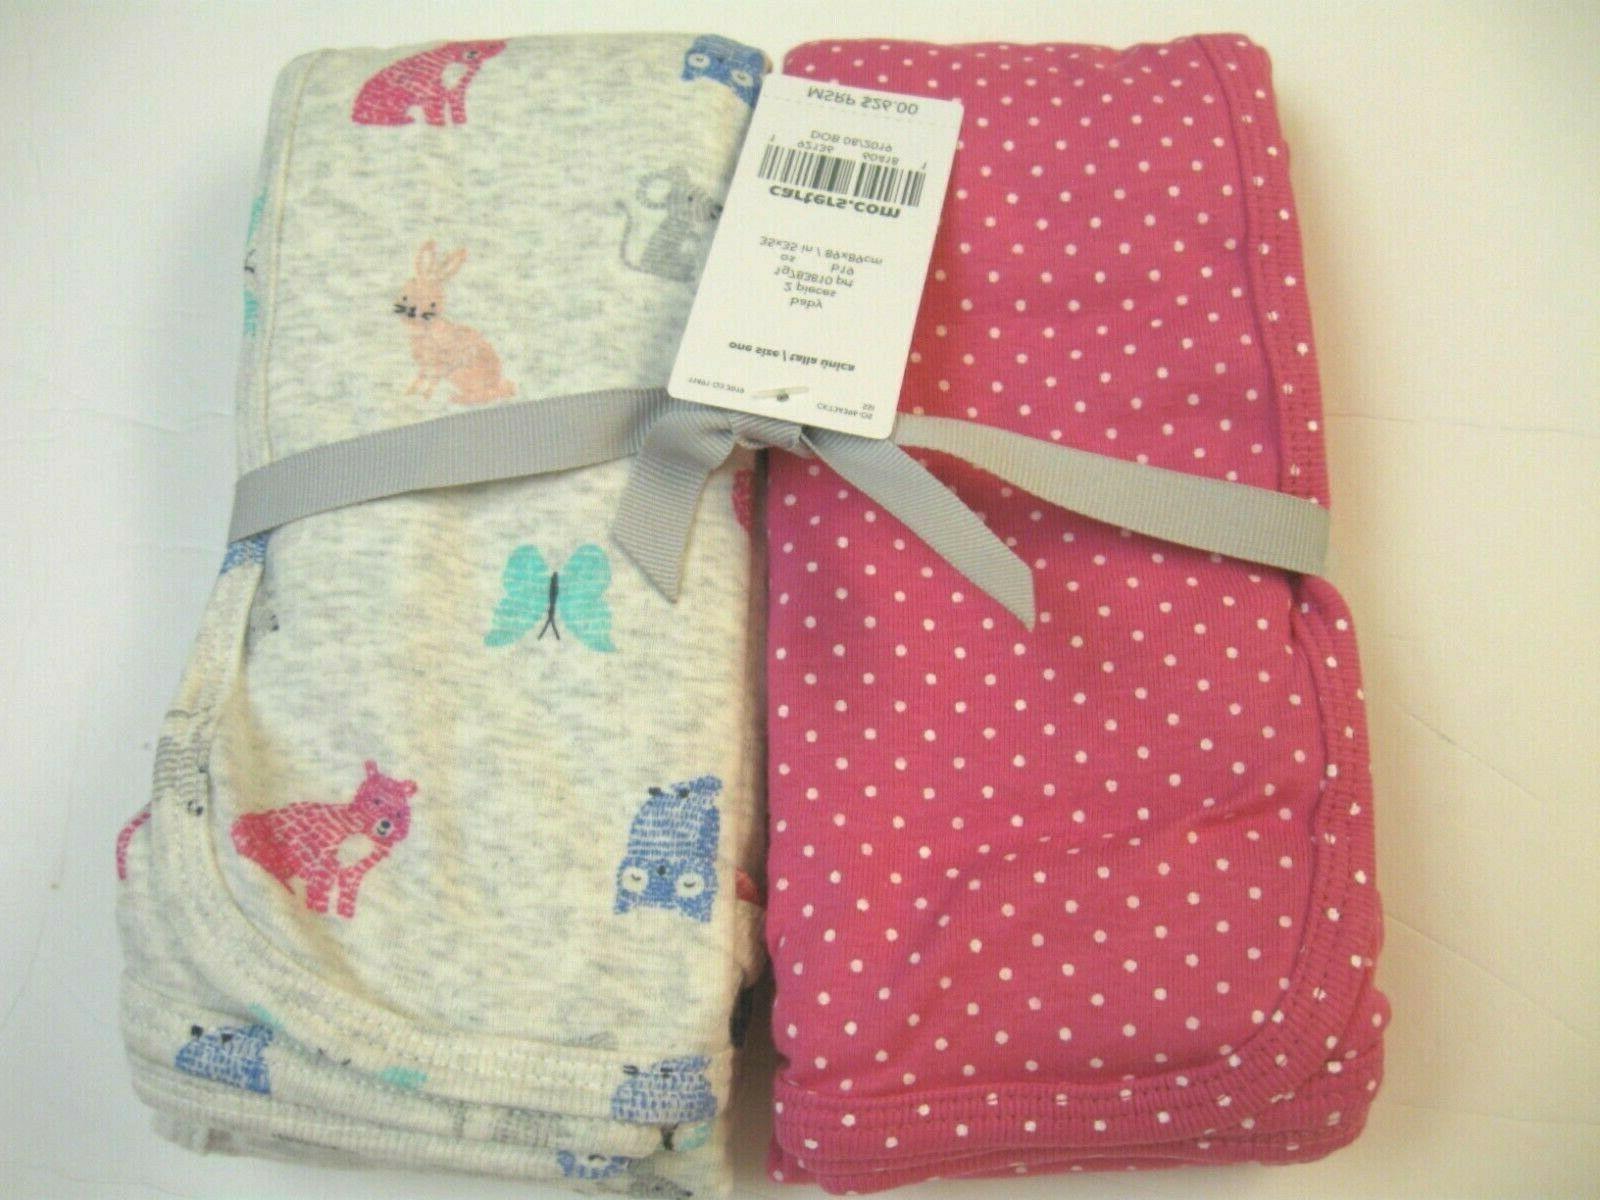 Carter's Baby Swaddle Blanket Polka and